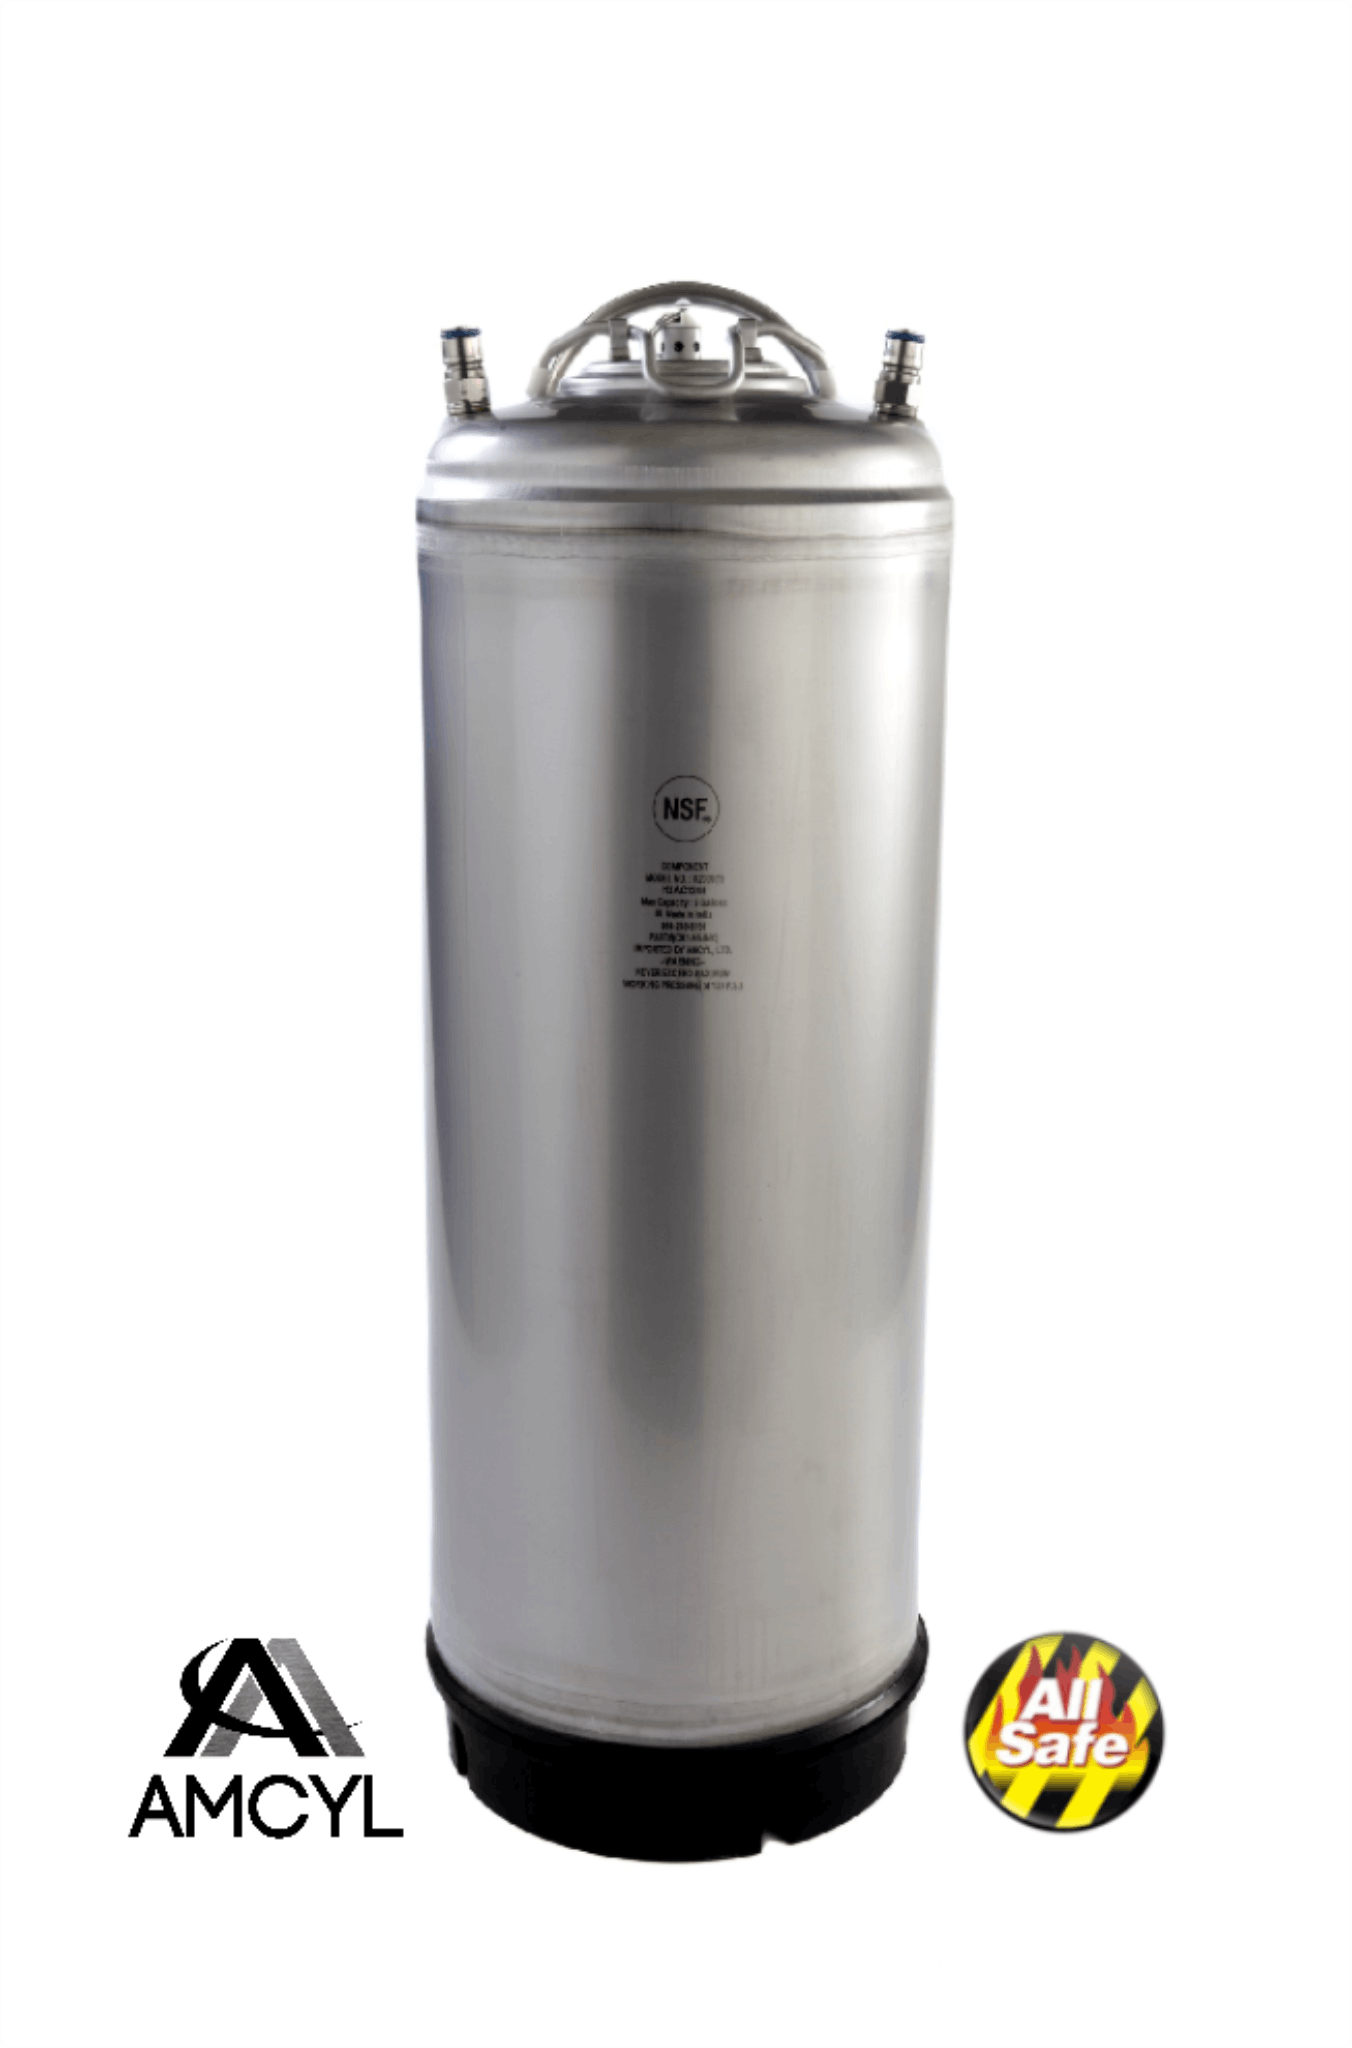 NEW! NSF Approved AMCYL 5 Gallon Single Handle Kegs Keg sold by All Safe Global, Inc.